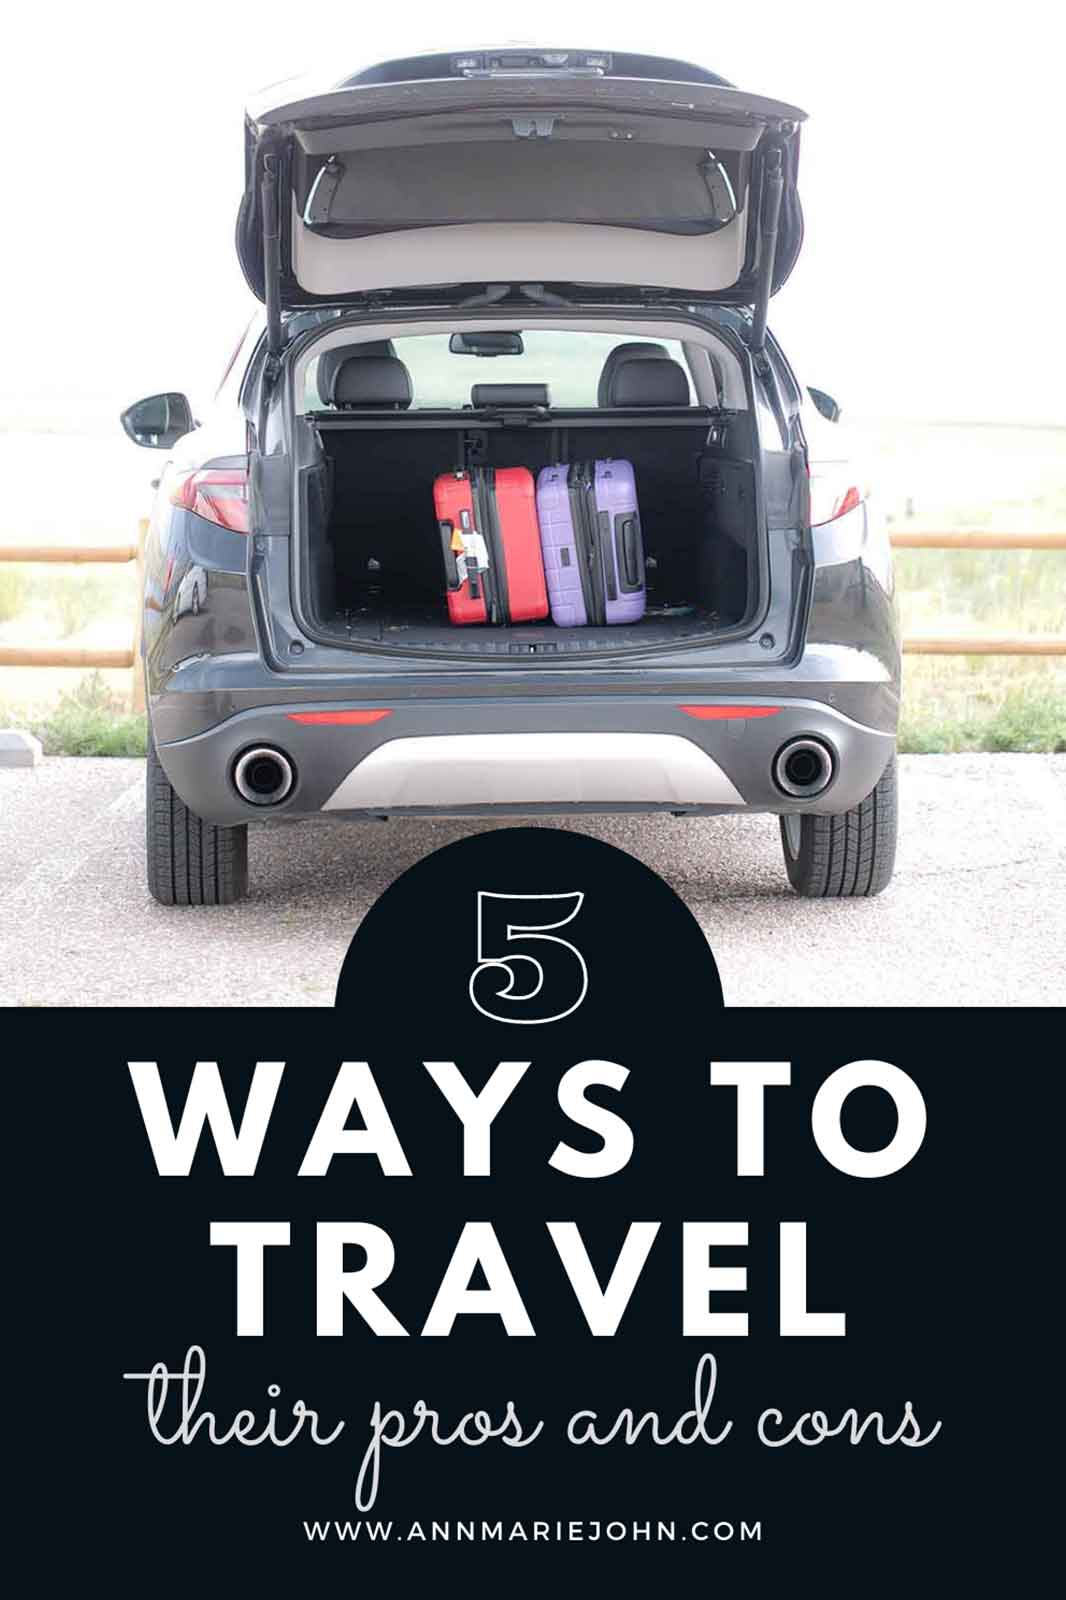 5 Ways to Travel, and Their Cons and Pros